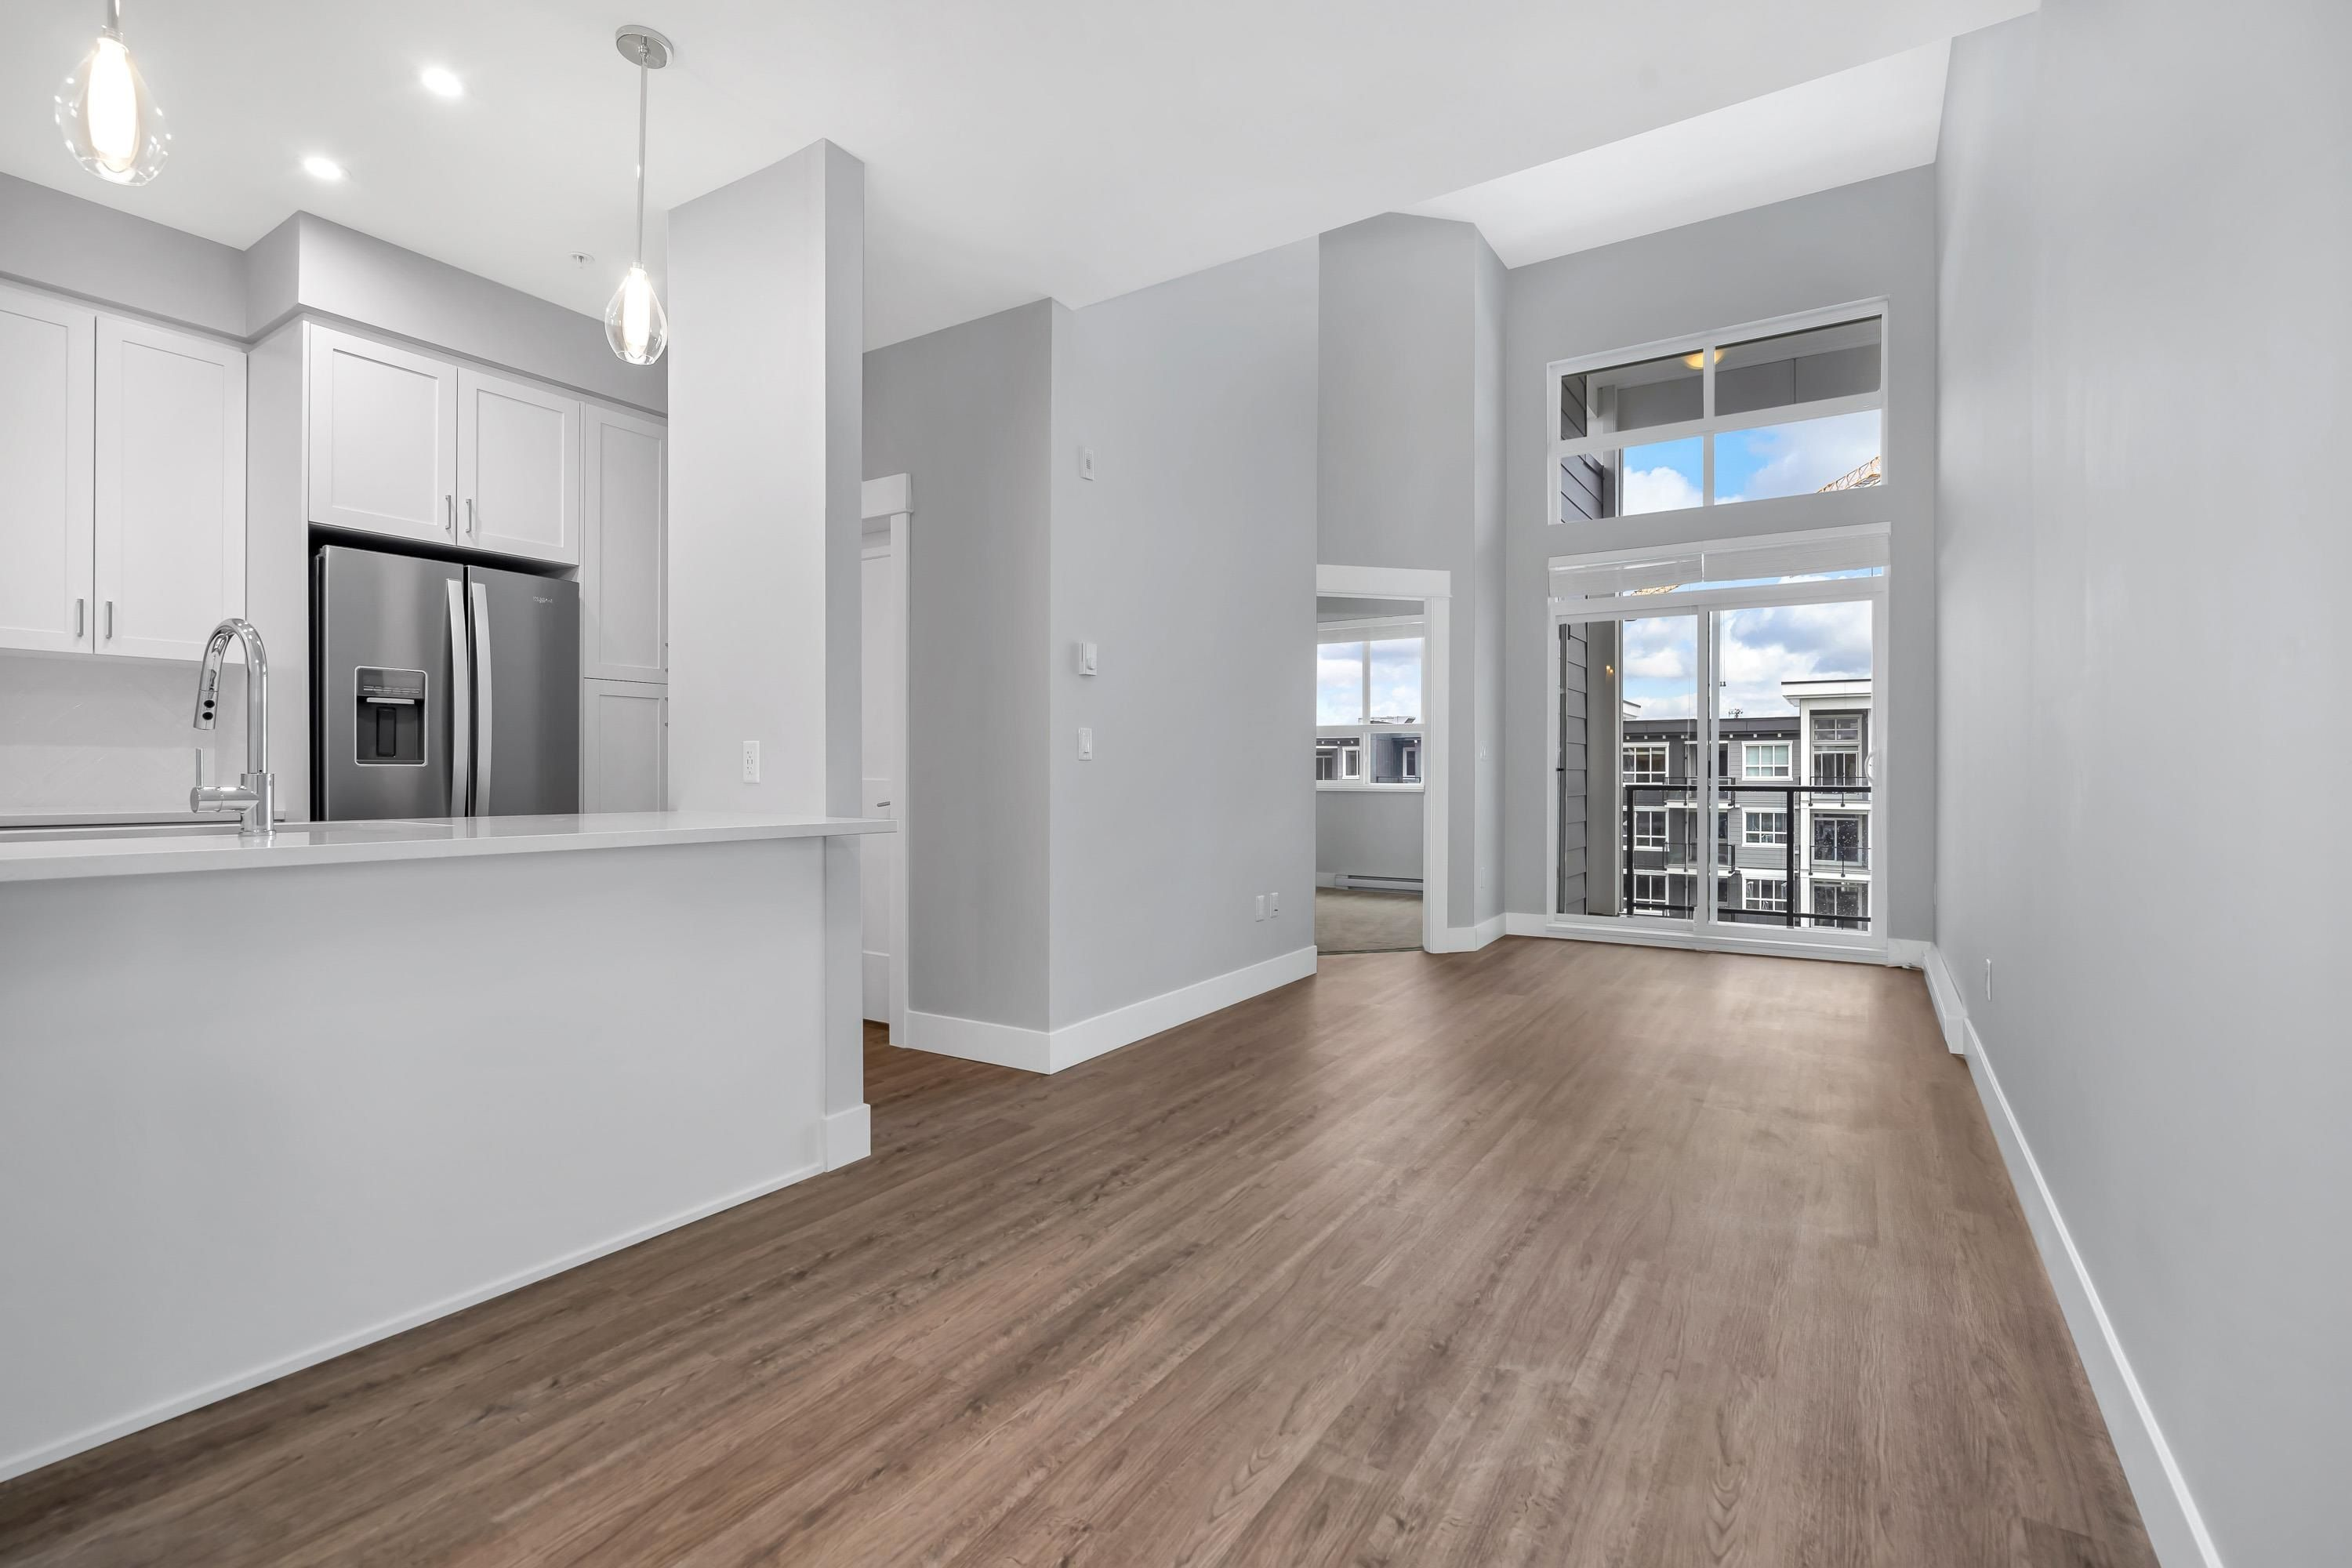 """Main Photo: 4616 2180 KELLY Avenue in Port Coquitlam: Central Pt Coquitlam Condo for sale in """"Montrose Square"""" : MLS®# R2614103"""